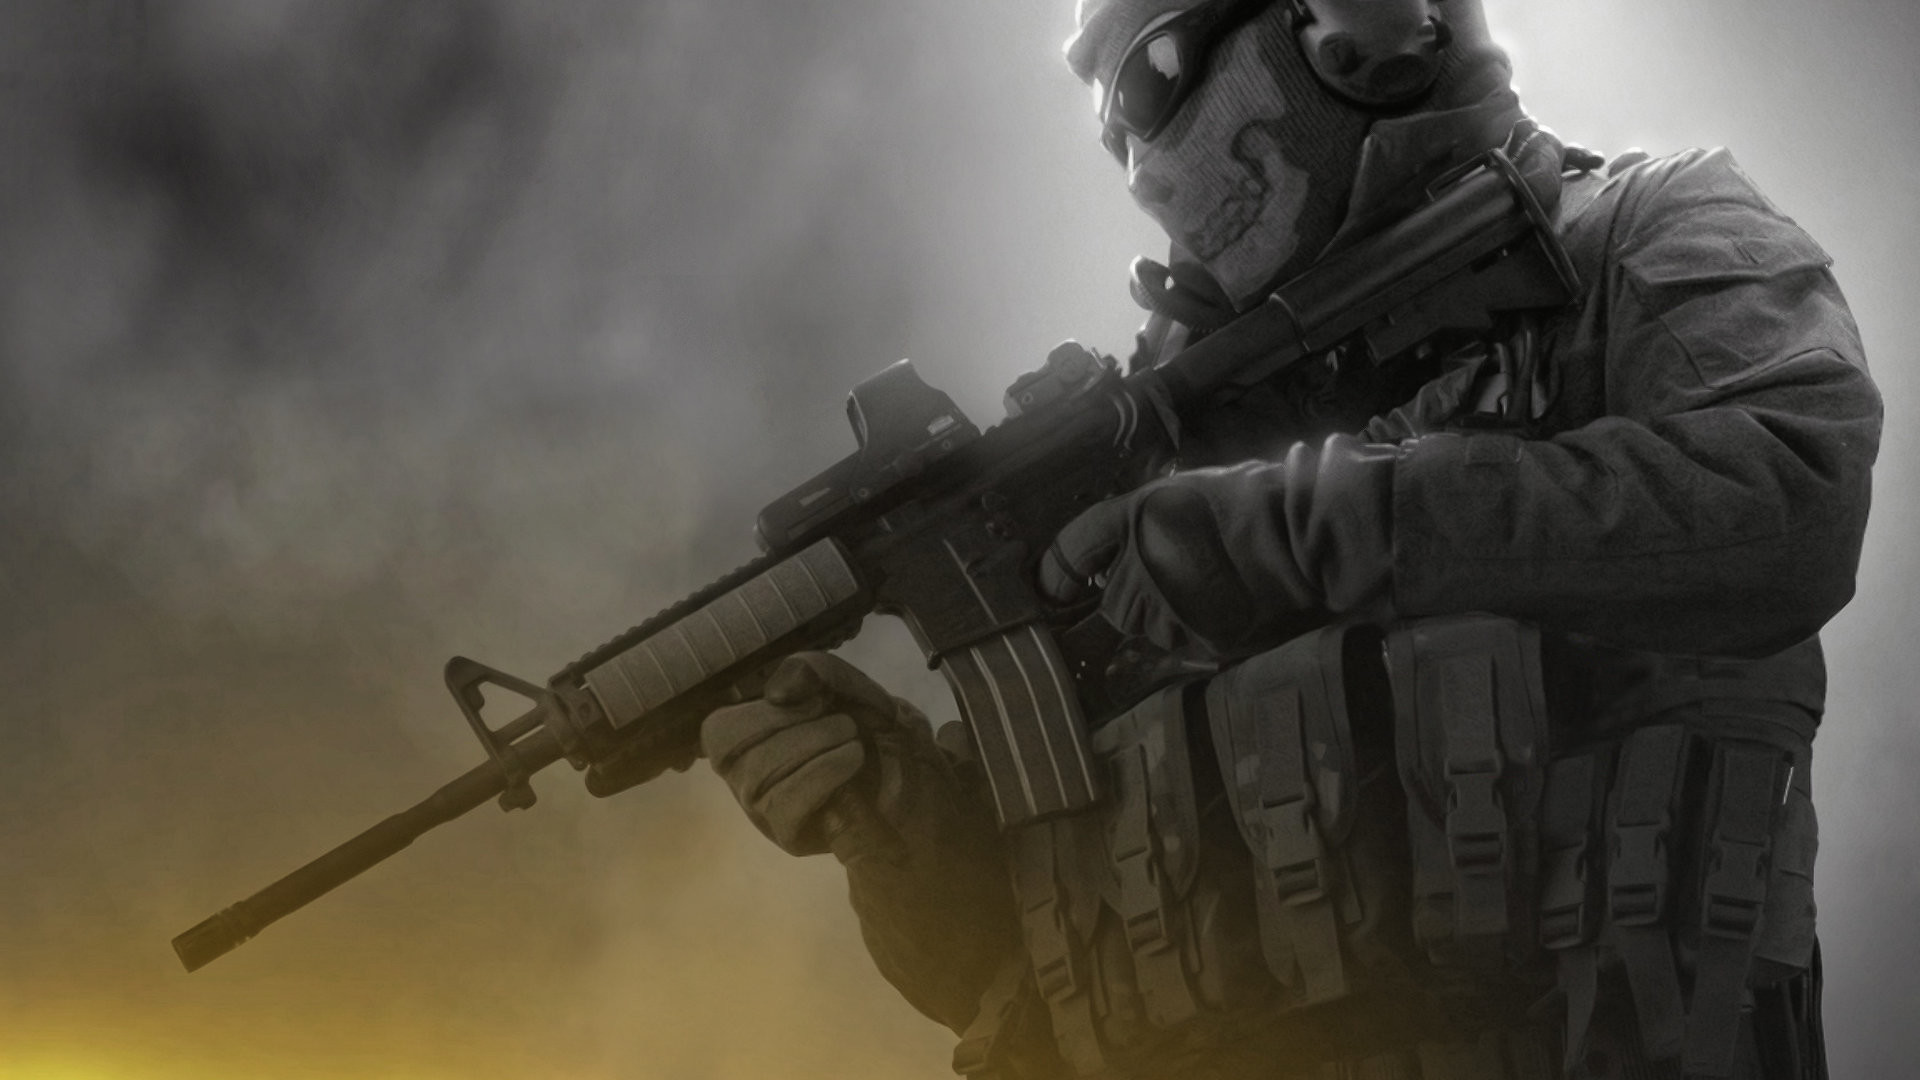 Res: 1920x1080, Soldier Wallpapers 18 - 1920 X 1080